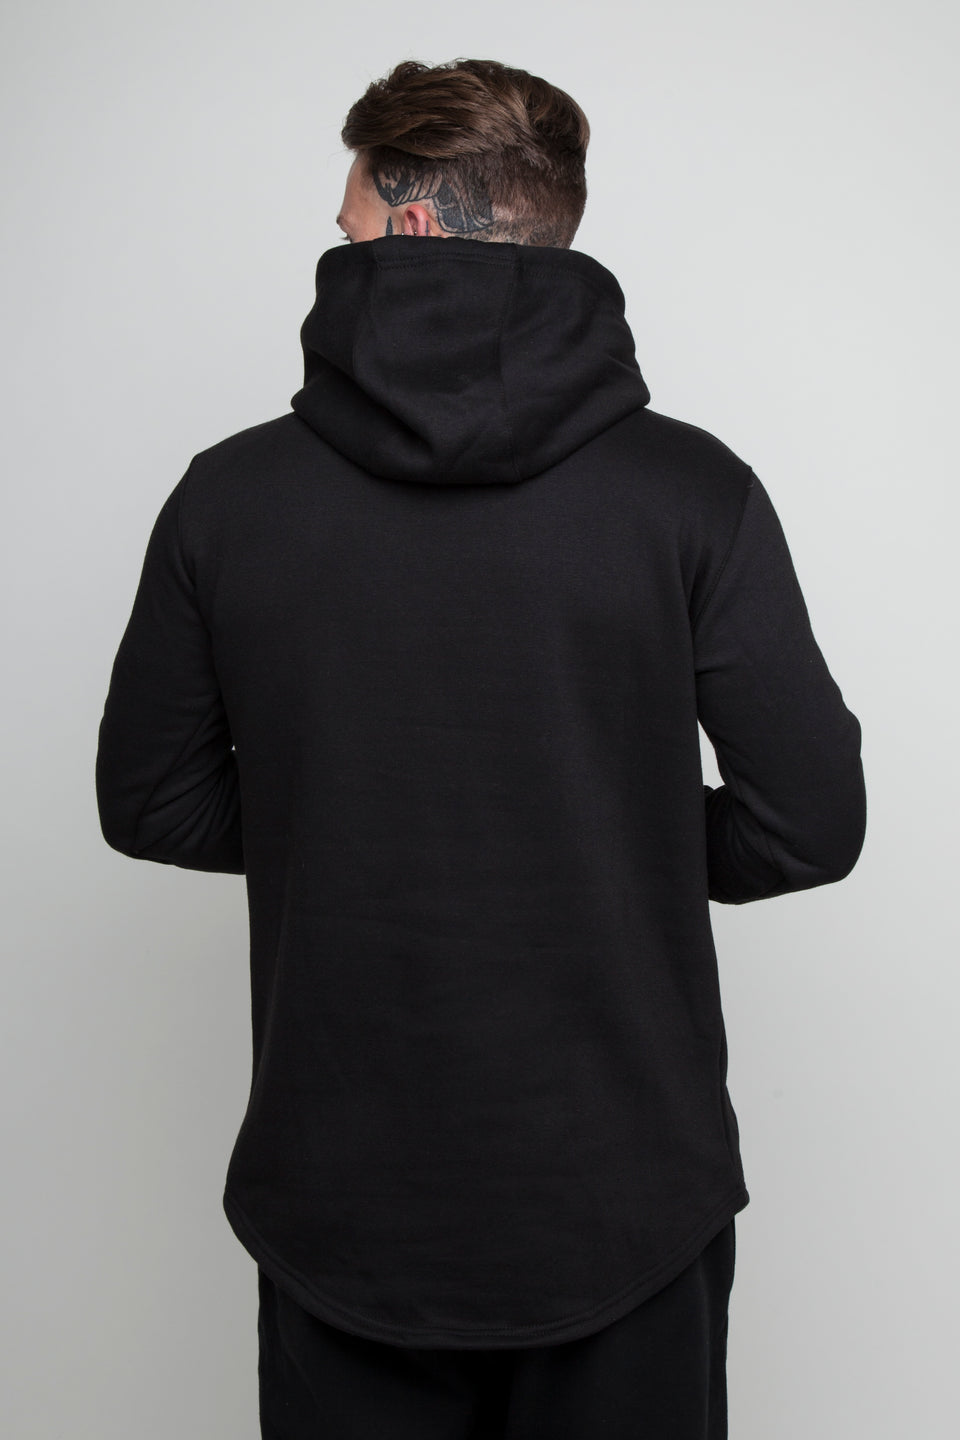 Vypex creed black fitted mens gym hoodie